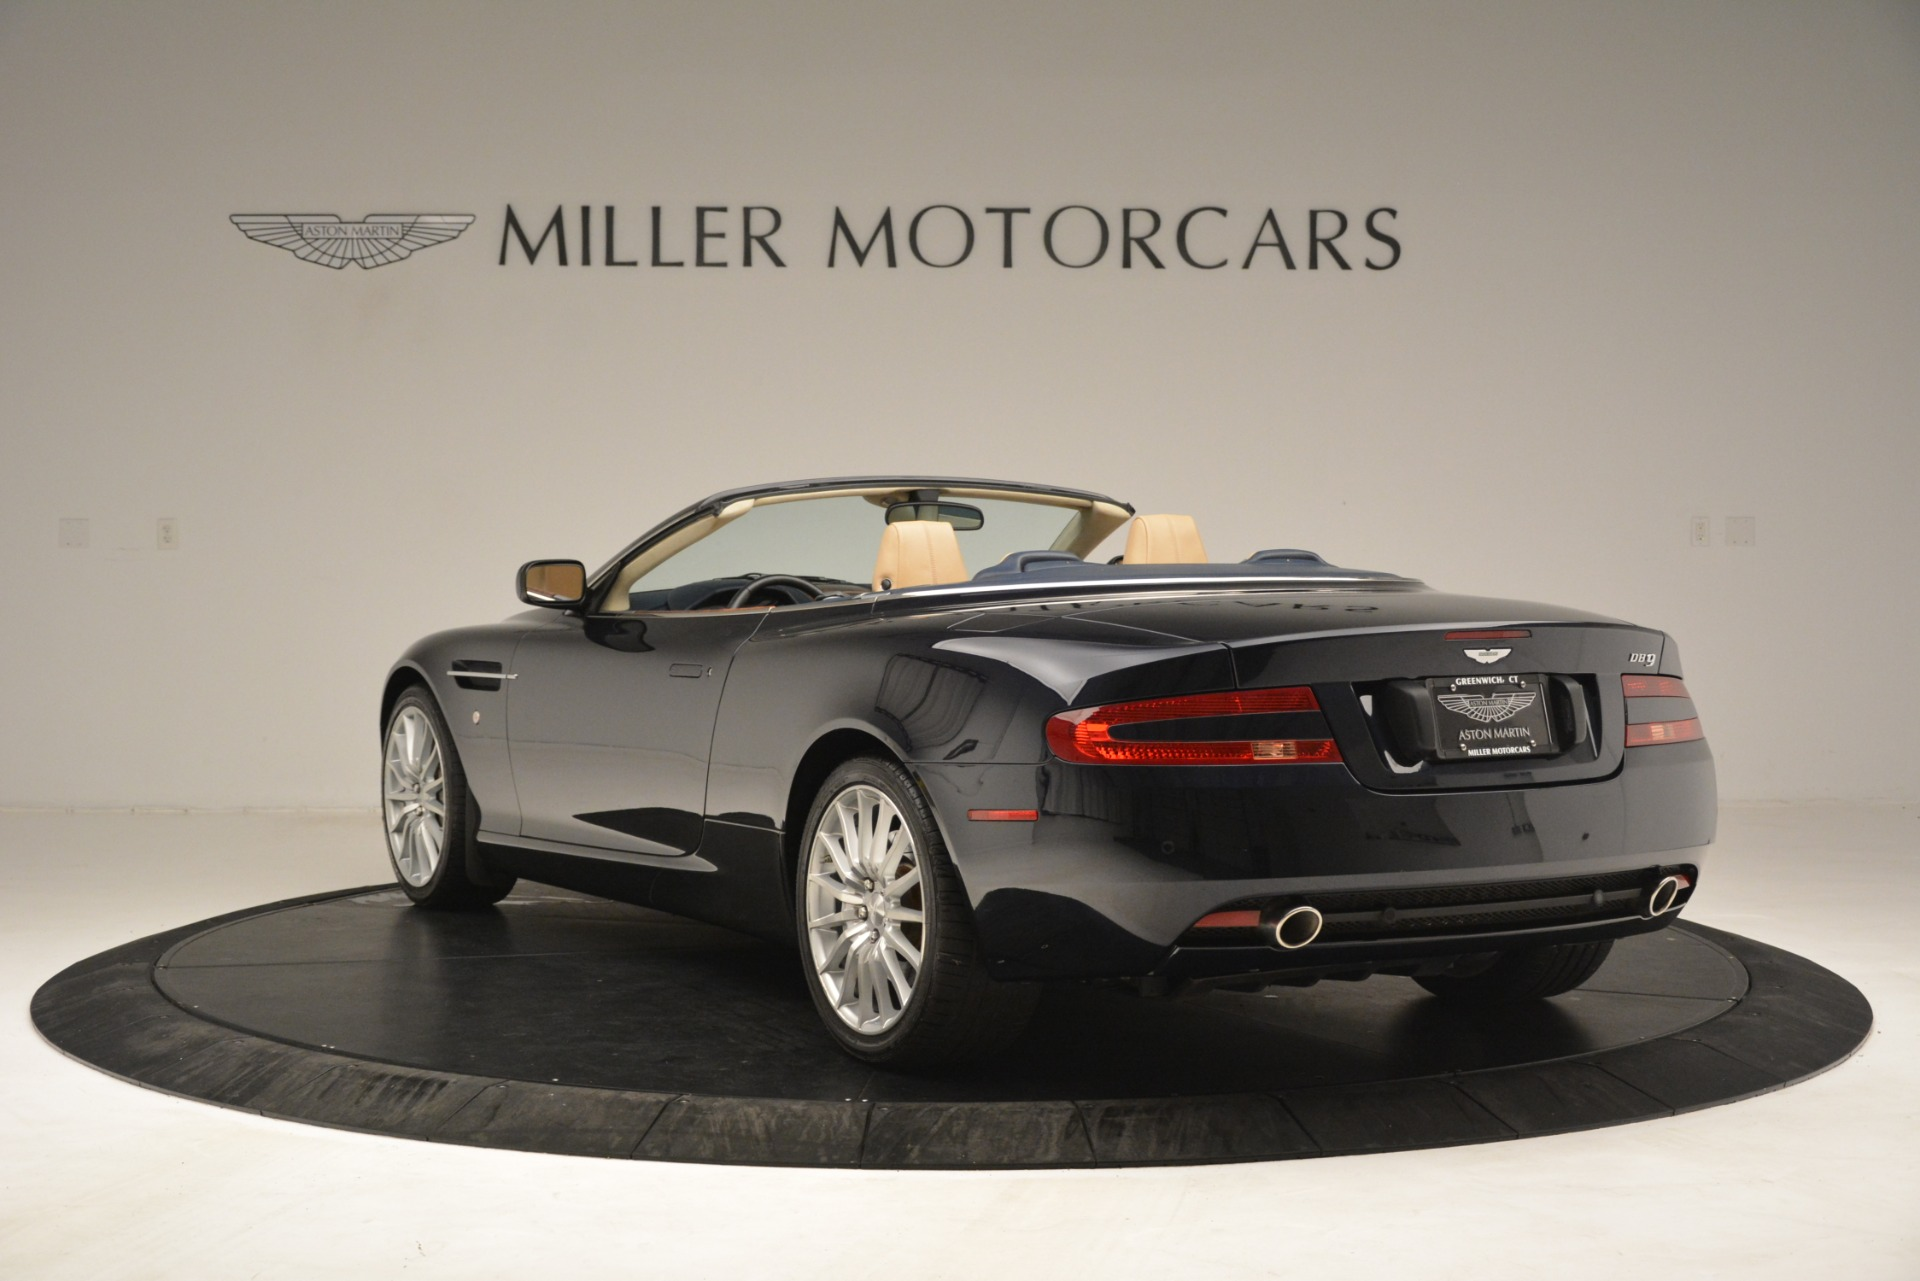 Used 2007 Aston Martin DB9 Convertible For Sale In Greenwich, CT 3291_p5